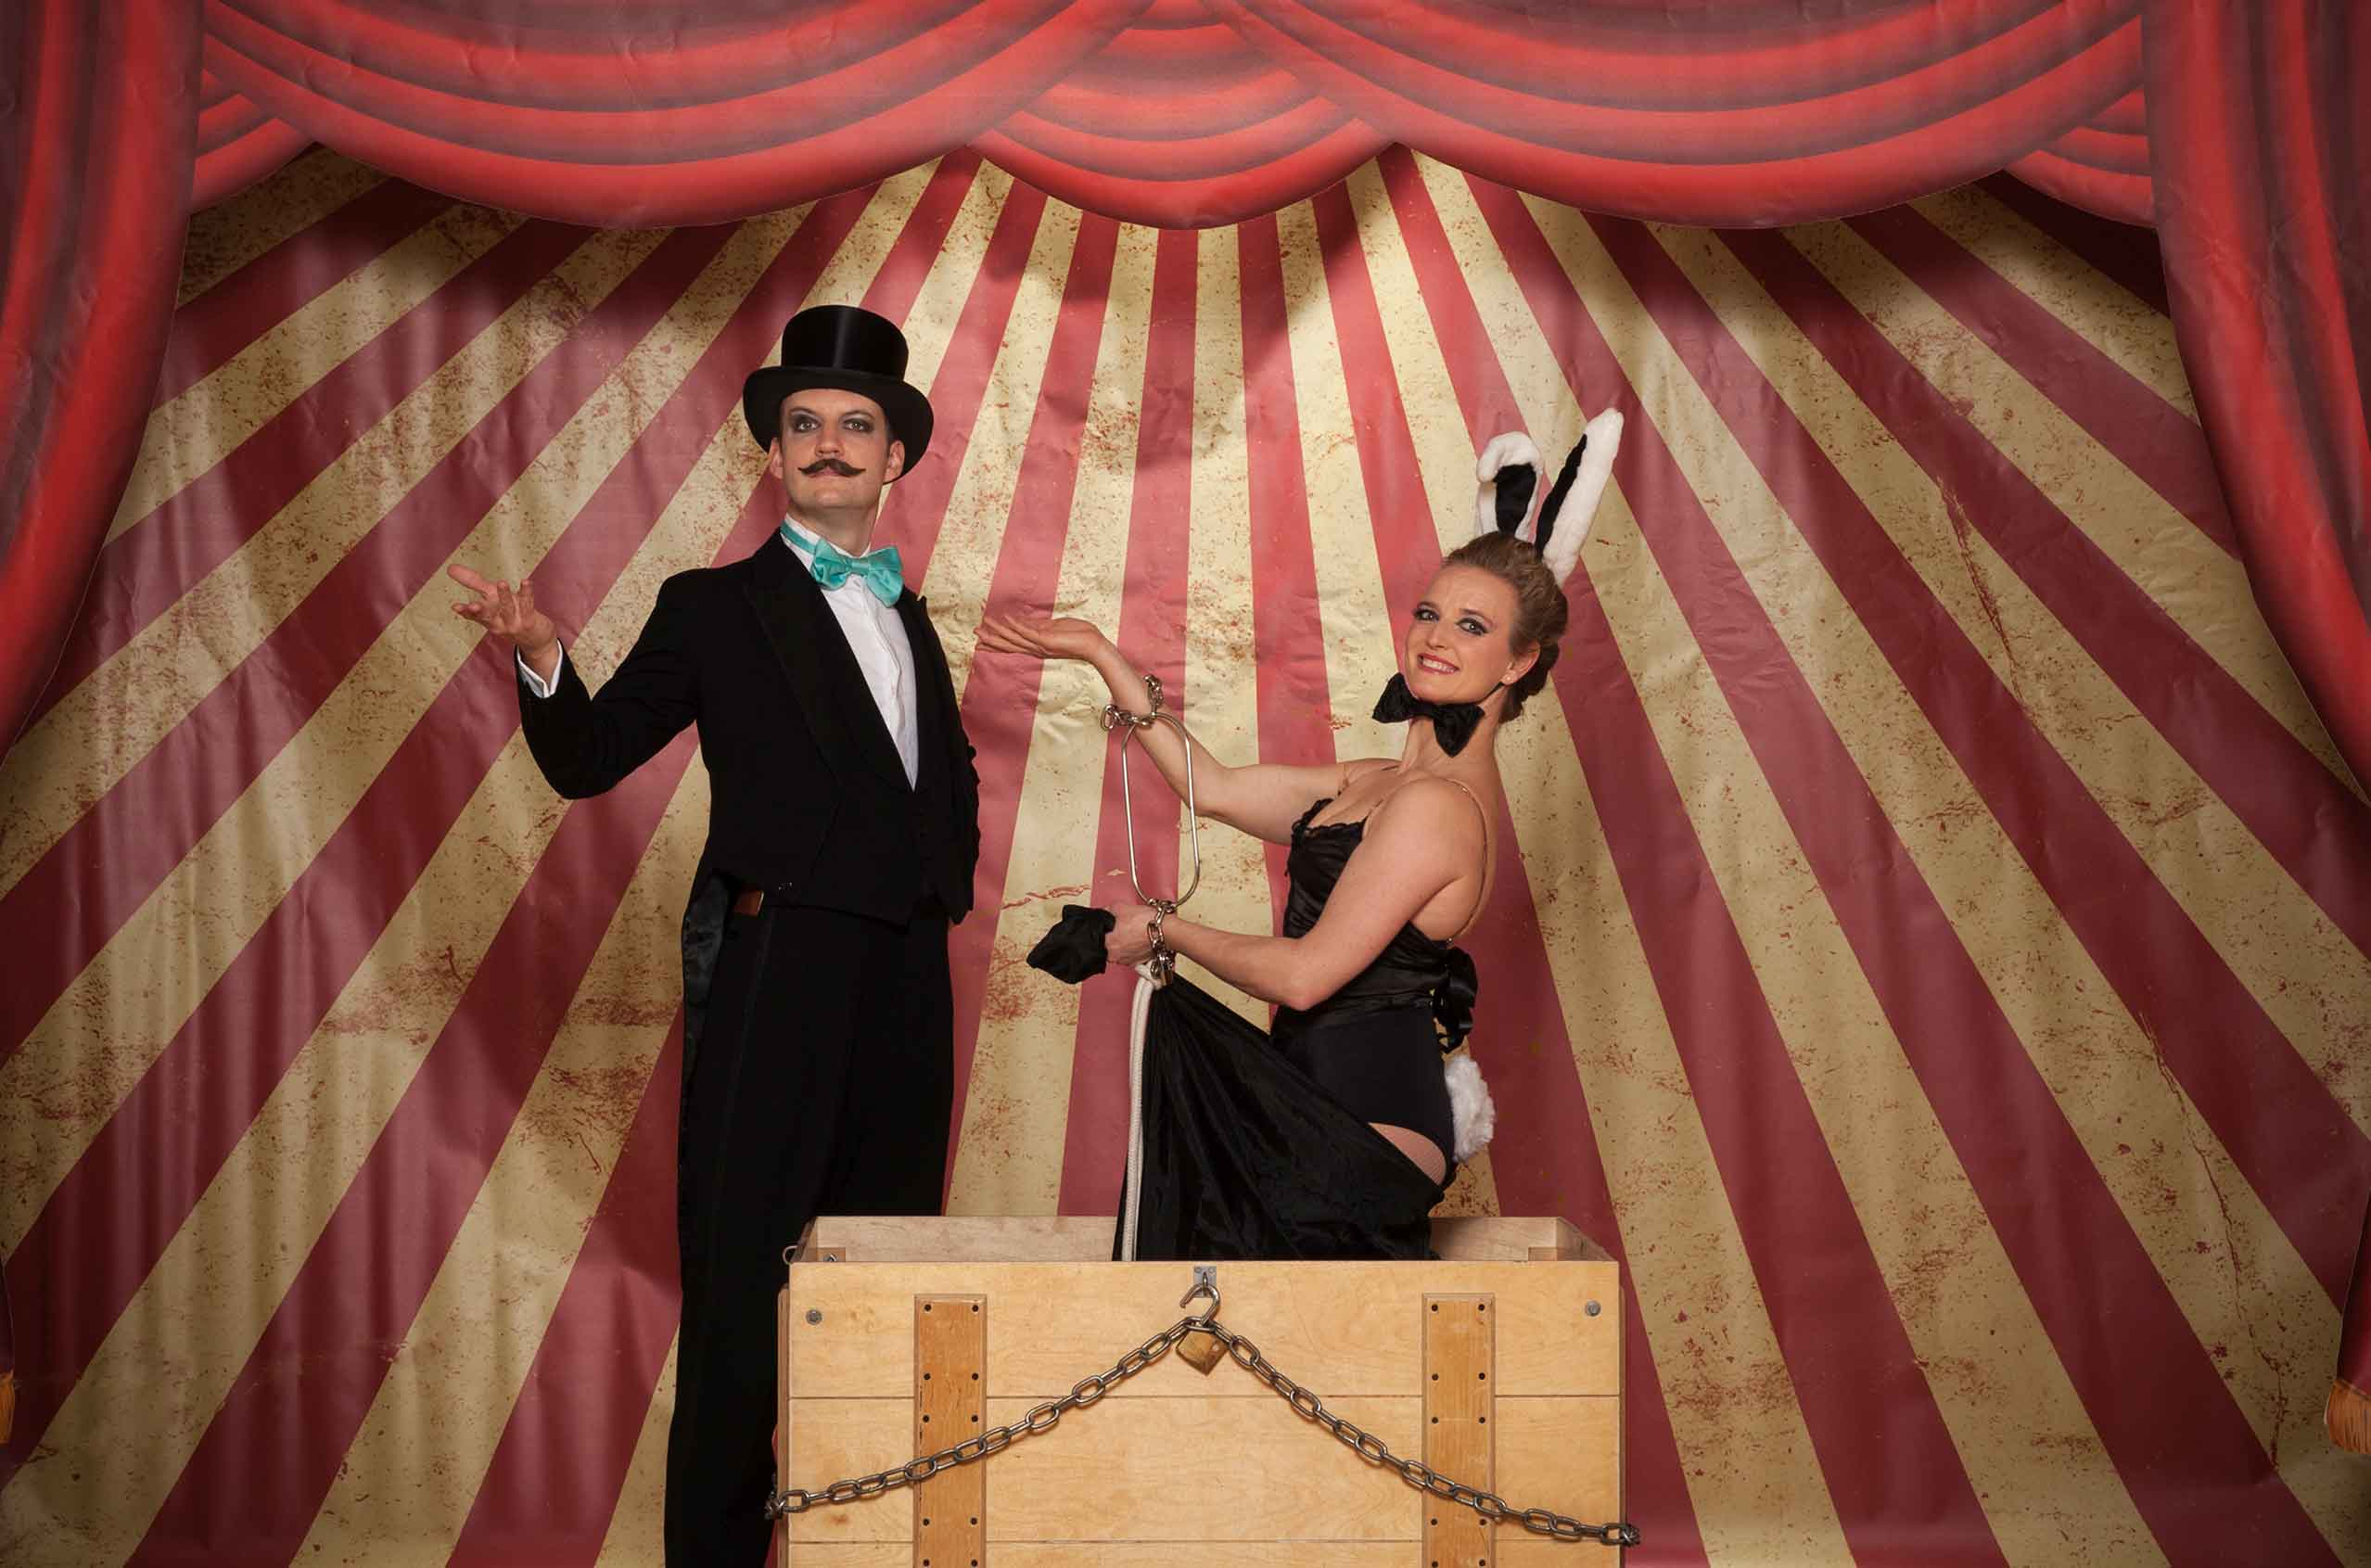 Cabaret magician double act stand on stage in vintage costume.